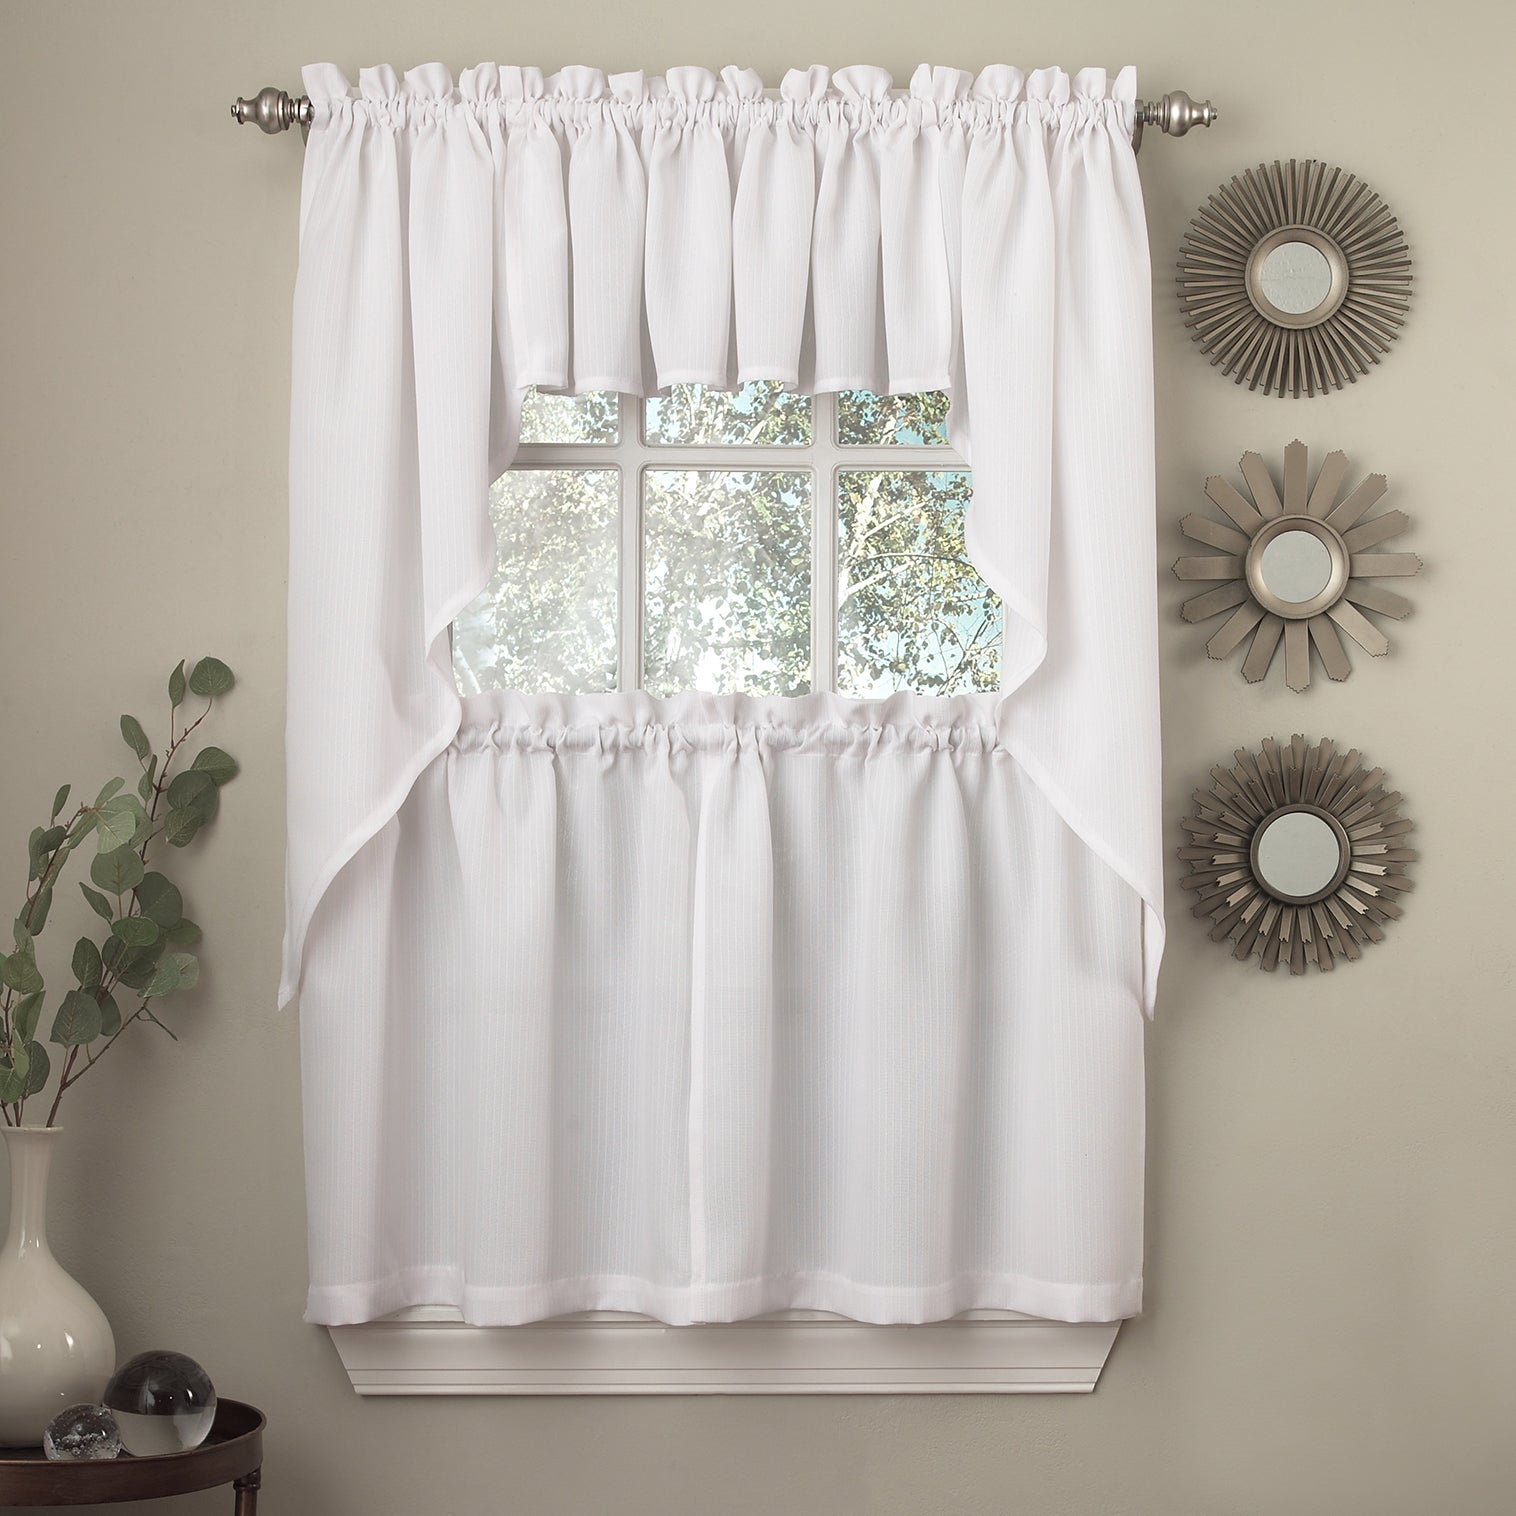 Incroyable Opaque Ribcord Kitchen Curtain Pieces   Tiers/ Valances/ Swags